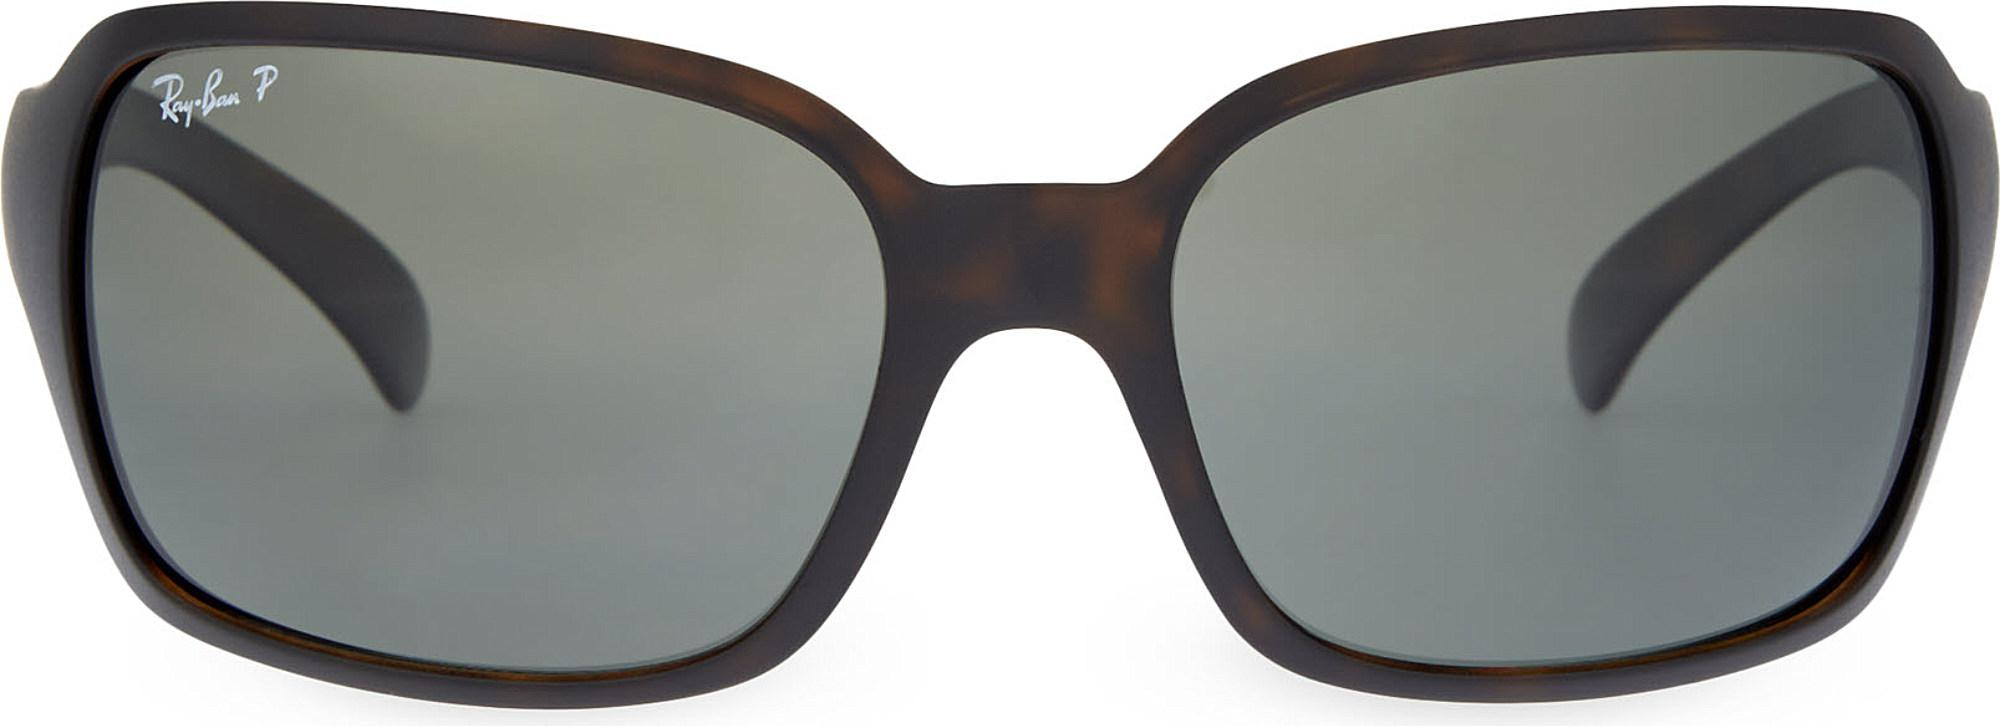 bb8f60aa5dc Lyst - Ray-Ban Rb4068 Square Sunglasses in Black